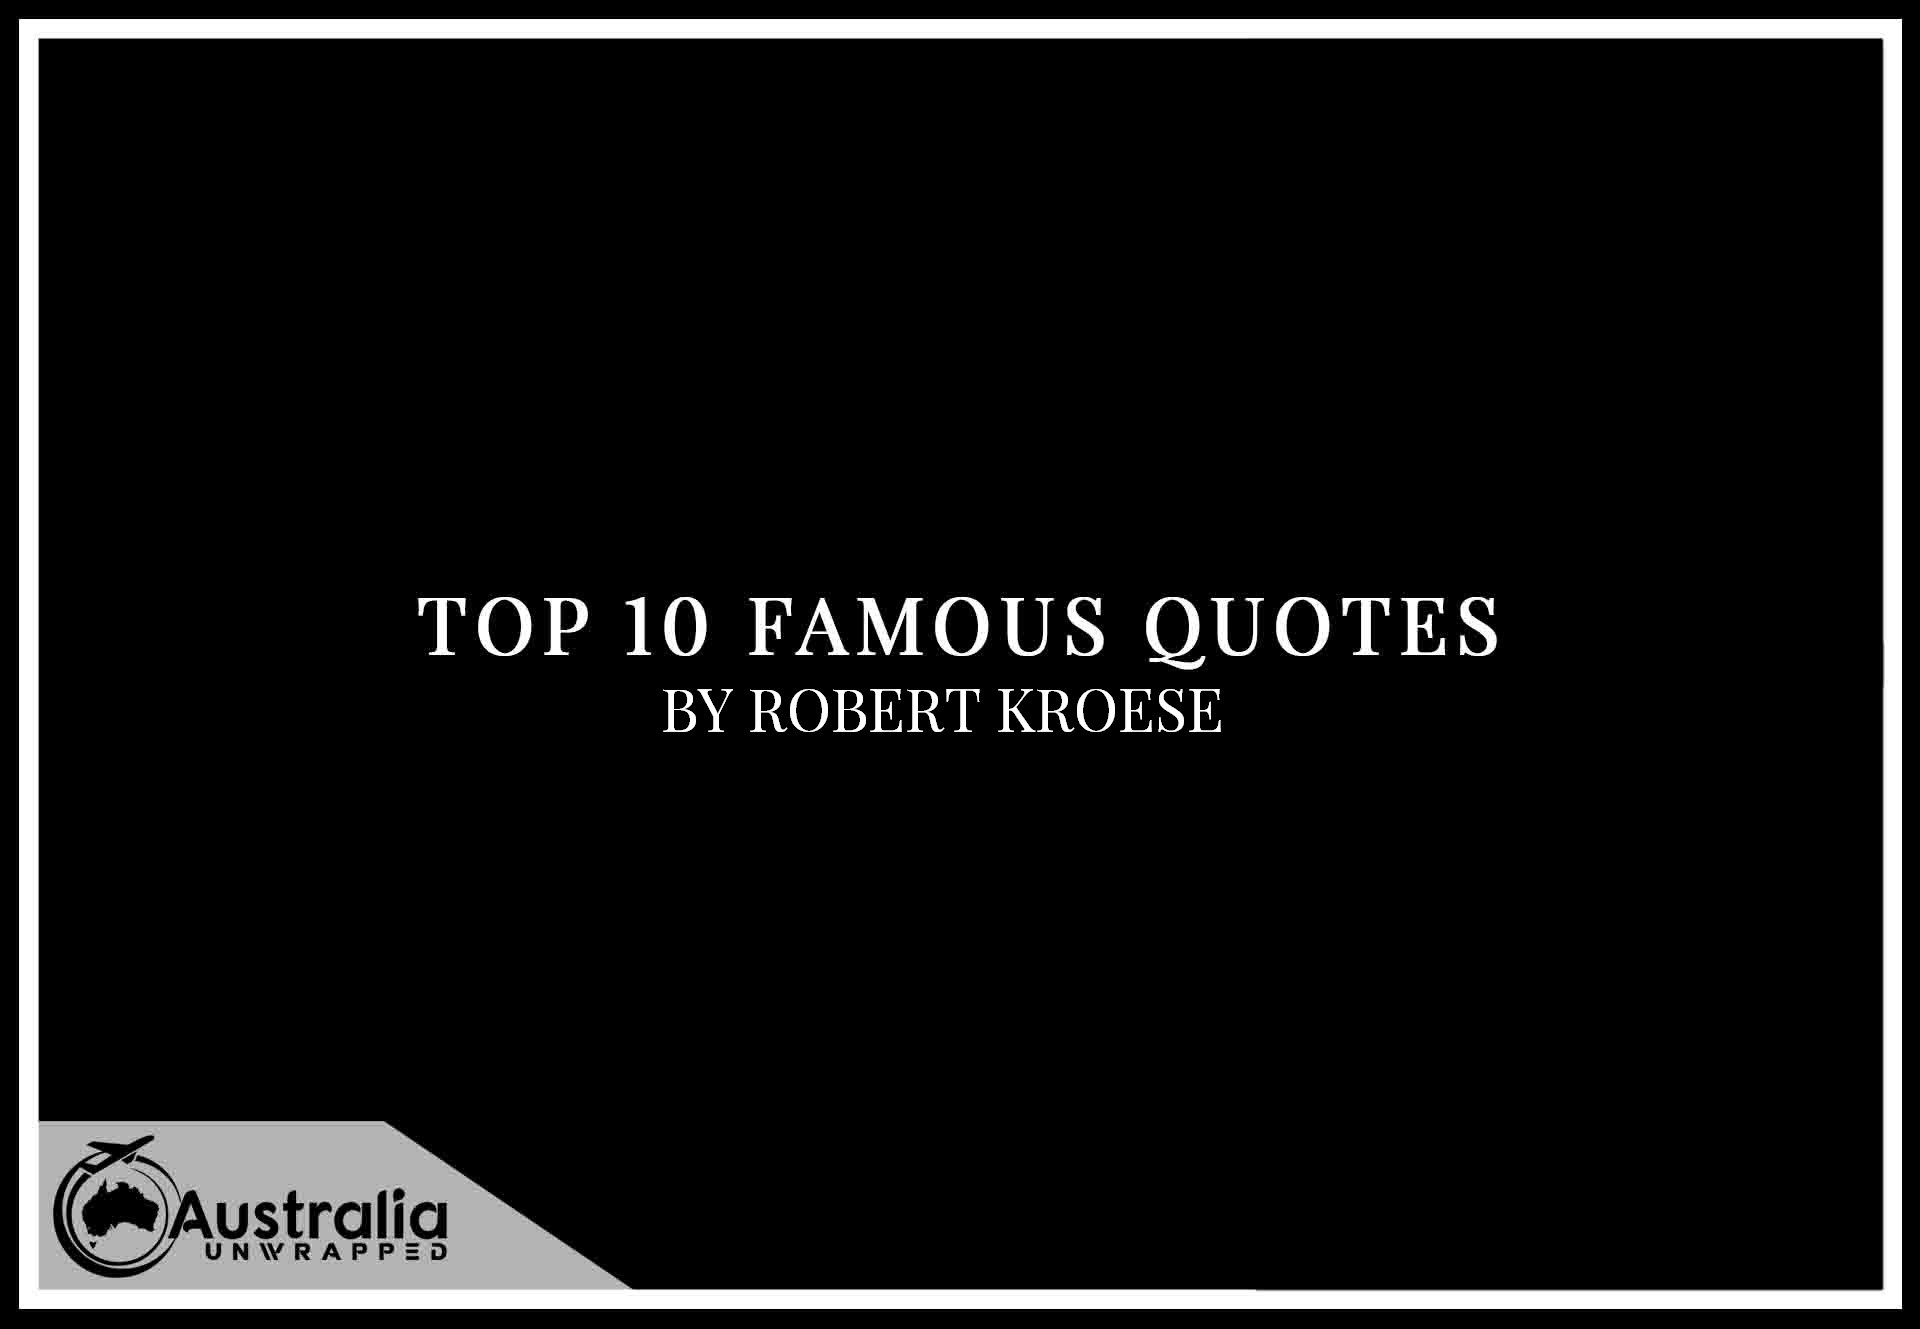 Top 10 Famous Quotes by Author Robert Kroese